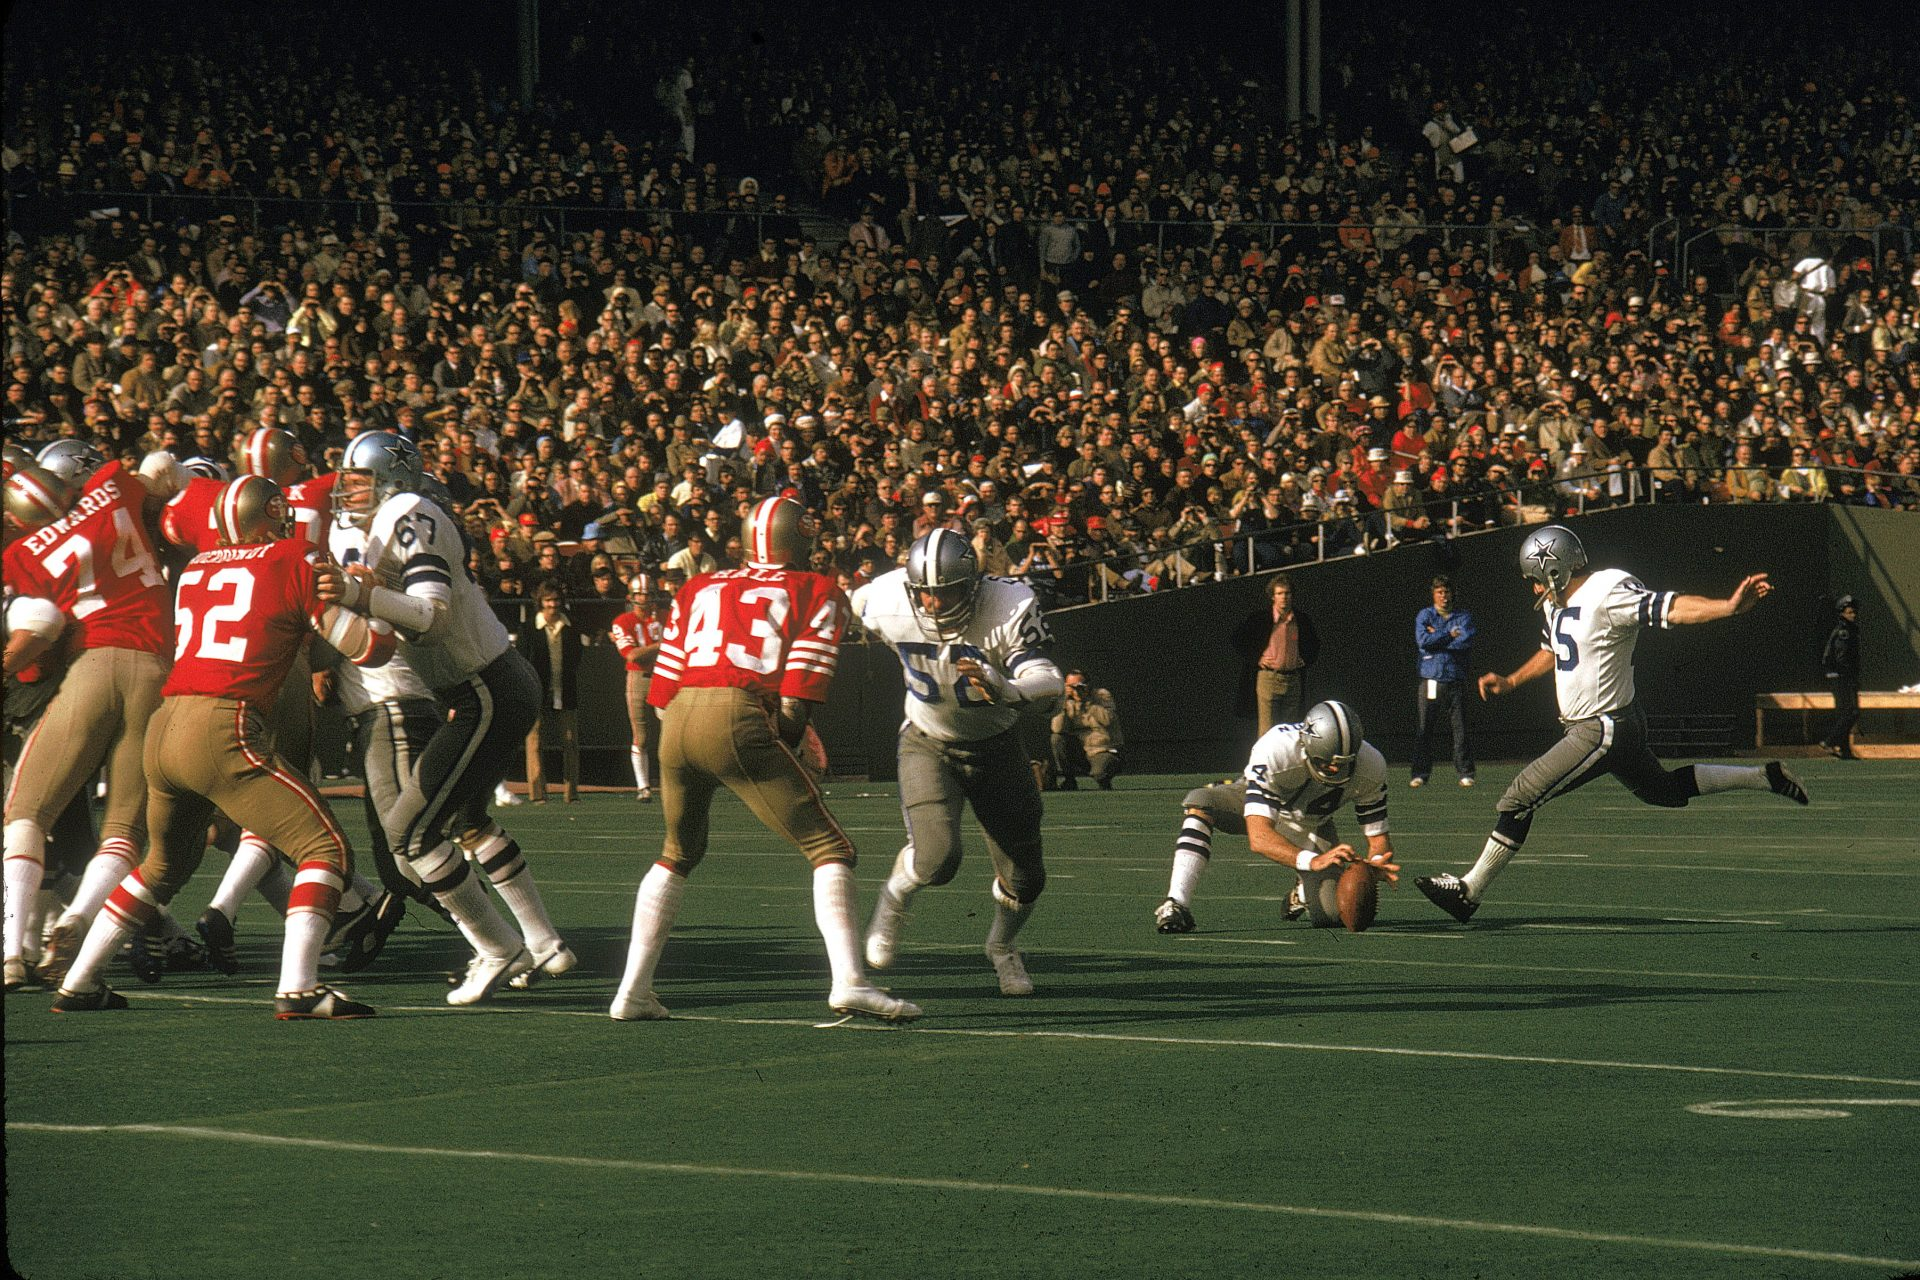 Toni Fritsch, on the far right, kicks one of three sucessful field goals for the Dallas Cowboys against the San Francisco 49ers in a 1972 NFC playoff game Candlestick Park, San Francisco. The Cowboys defeated the 49ers 30-28. Credit: James Flores/ Getty Images